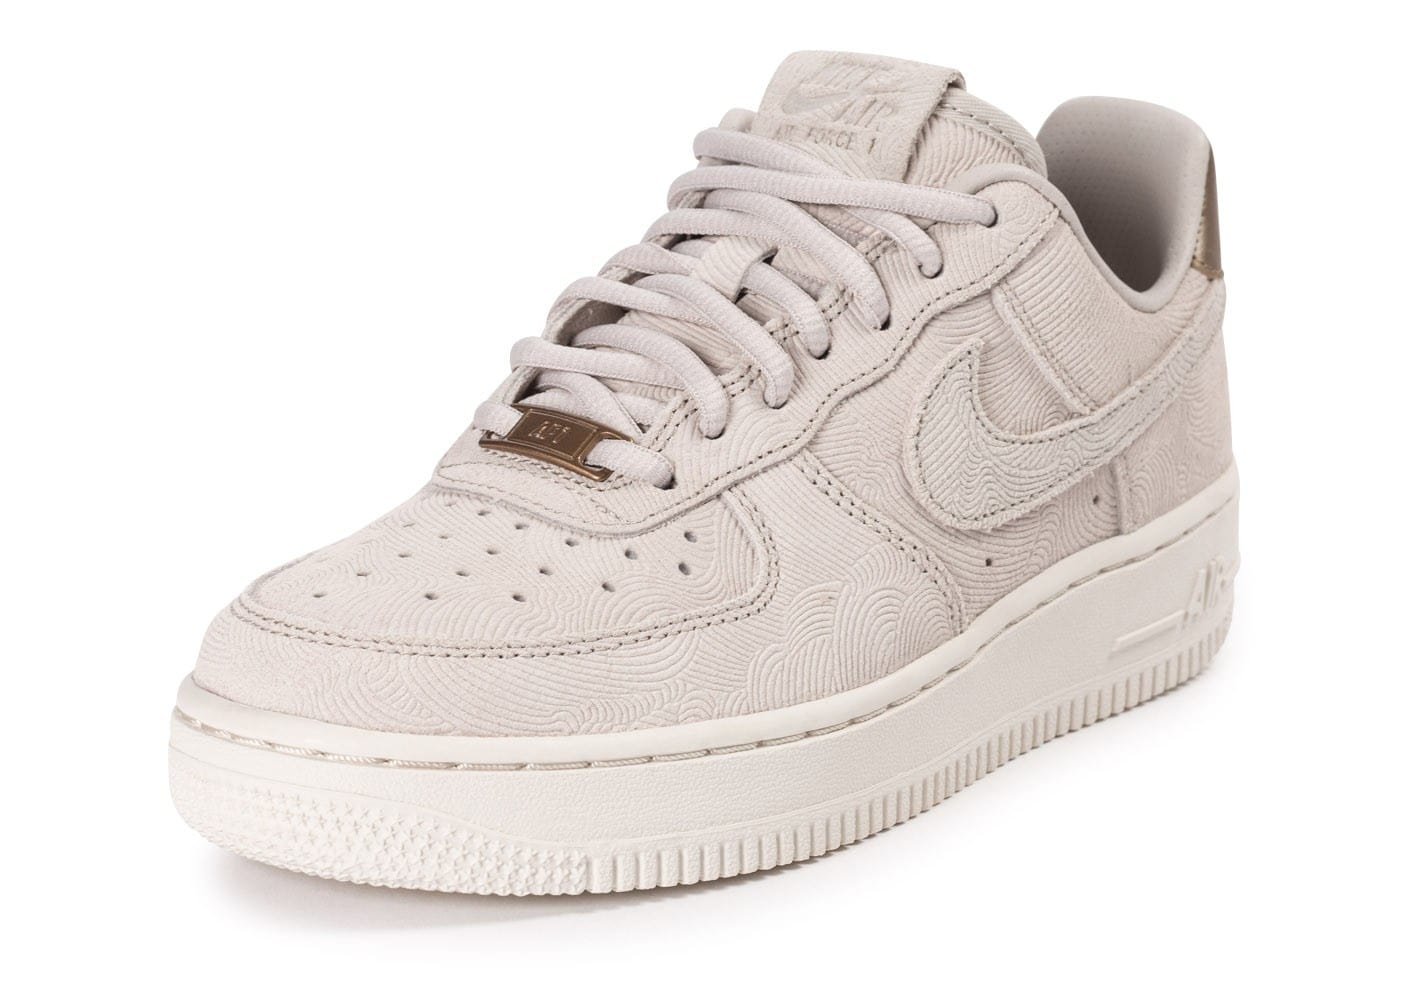 nike air force 1 premium suede gamma grey chaussures femme chausport. Black Bedroom Furniture Sets. Home Design Ideas